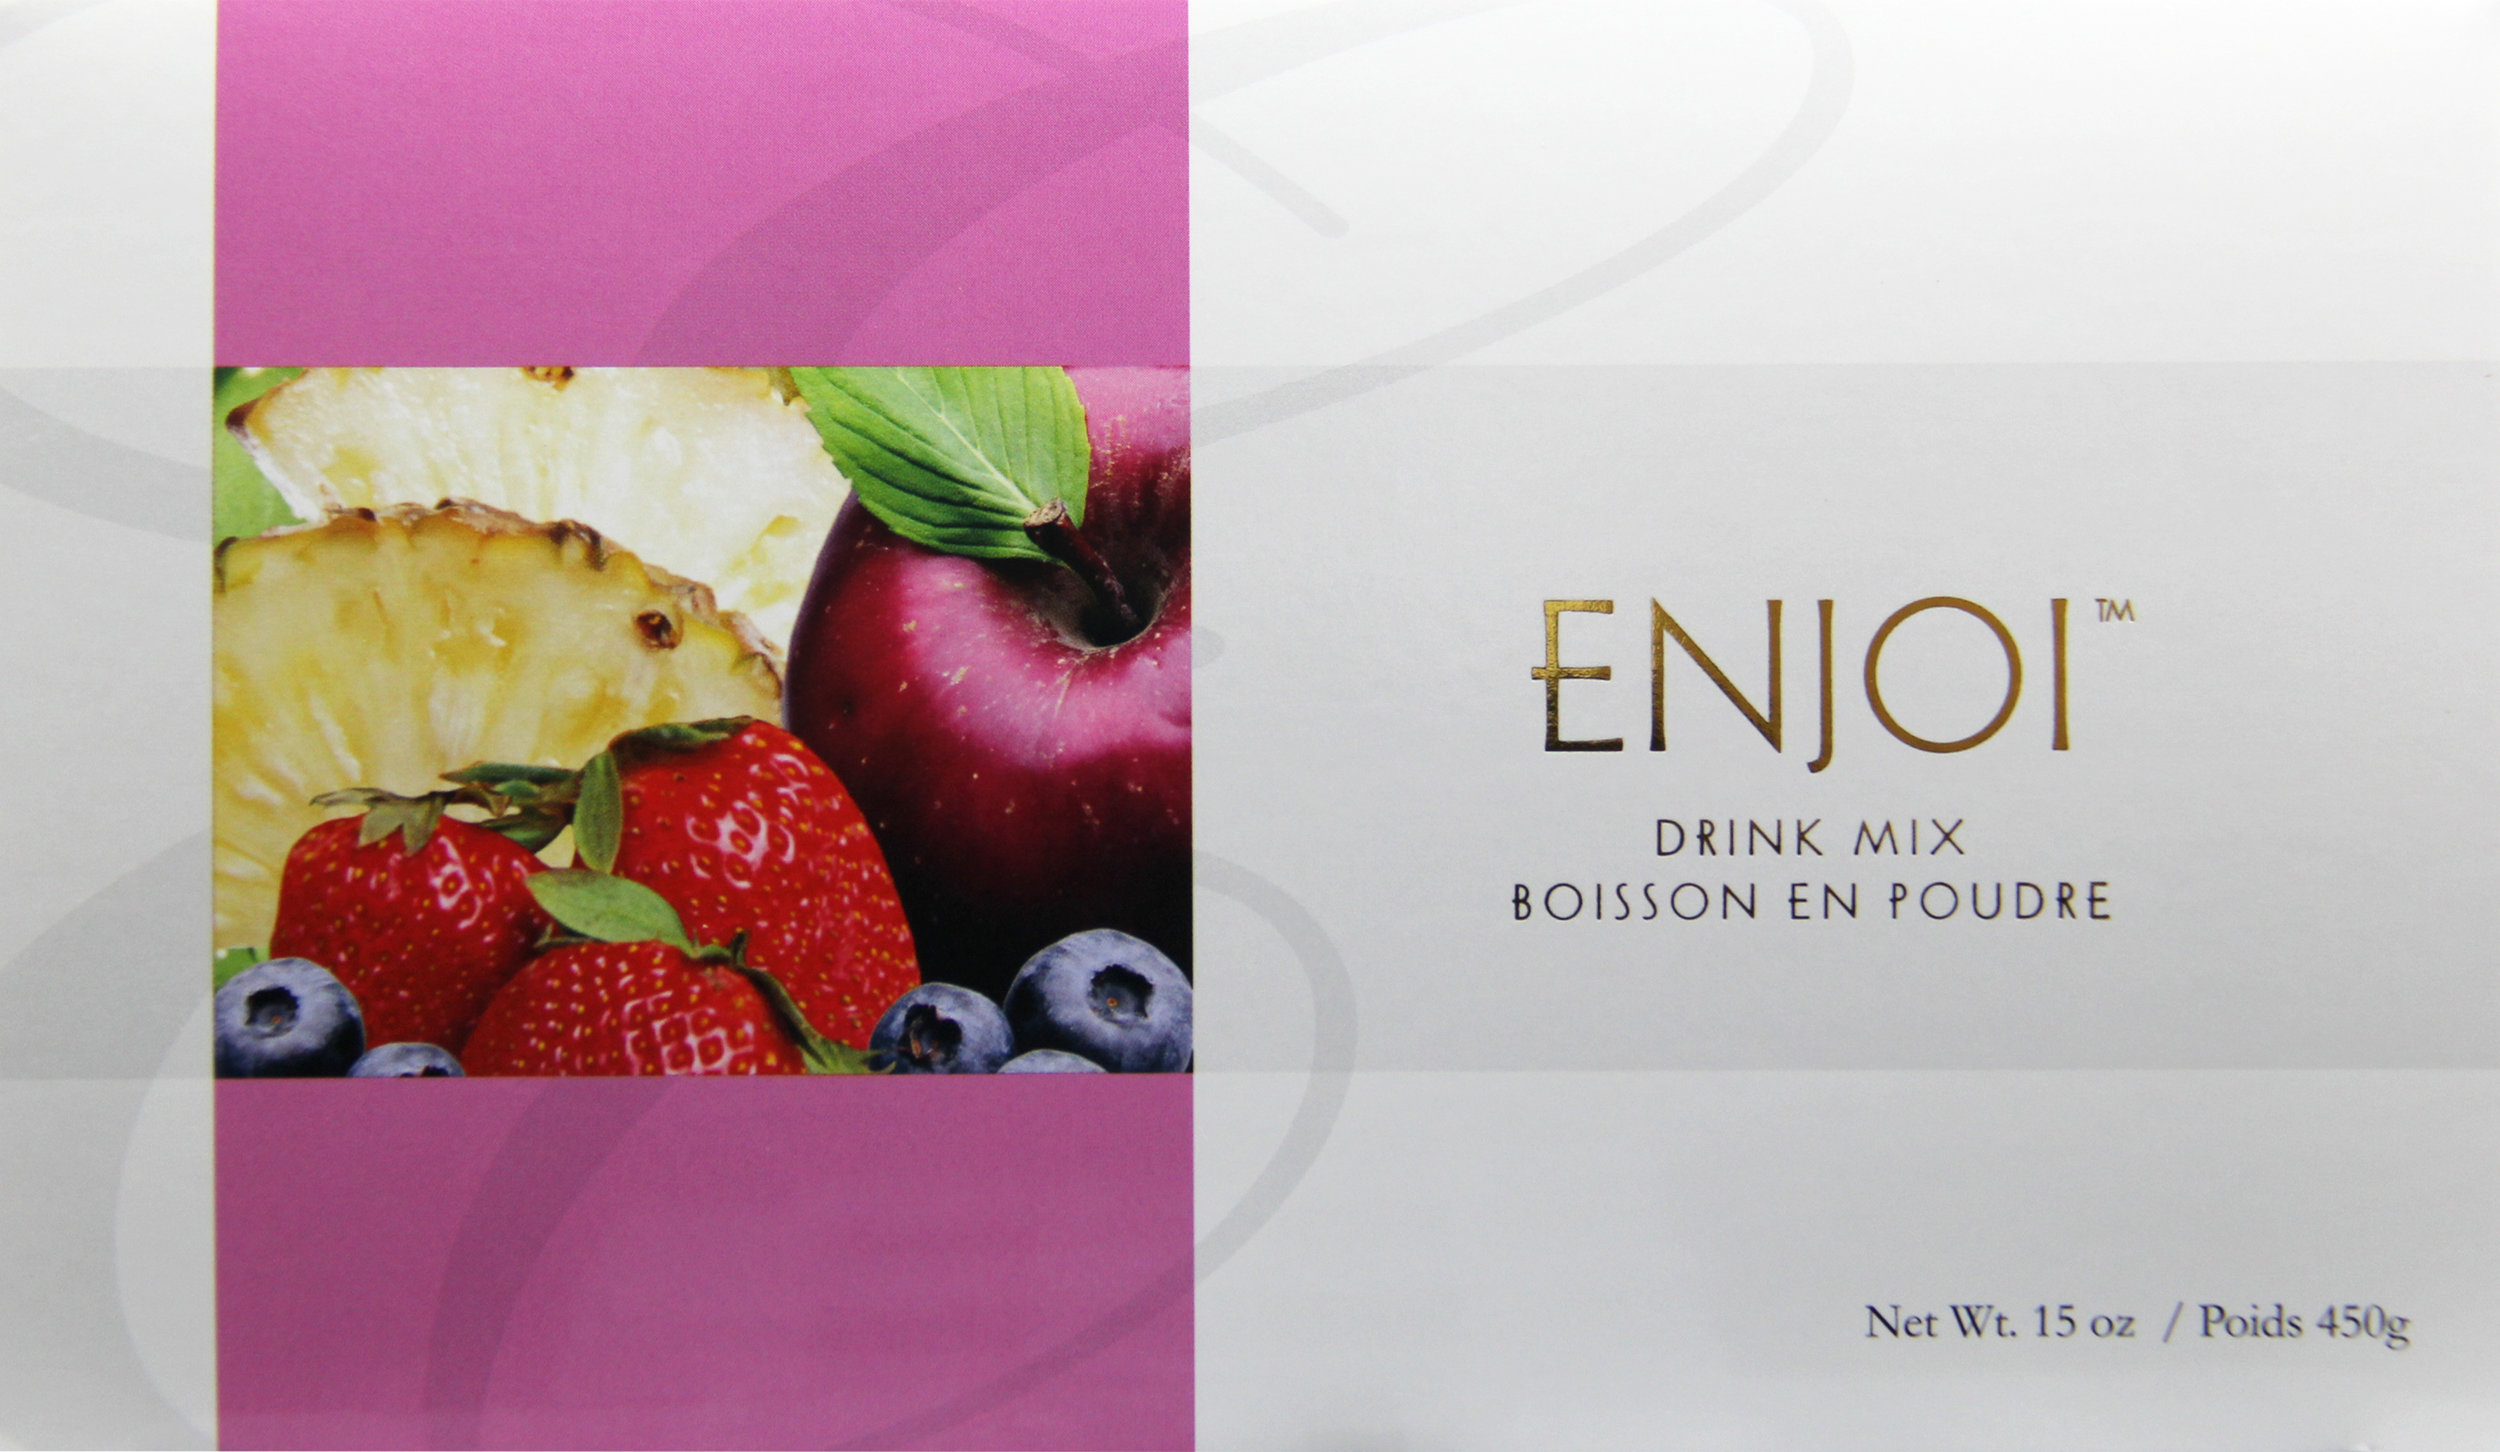 enjoi - Botanical Powdered Beverage. Great soy-free formula. Formulated with sacred lotus leaf, reishi mushroom, pearl, and barley, this delicious botanical beverage is great for those who are allergic to soy.Featured Ingredients: Rice, Apple, Blueberry, Strawberry, Pineapple, Barley, Reishi, Sacred Lotus Leaf, Pearl